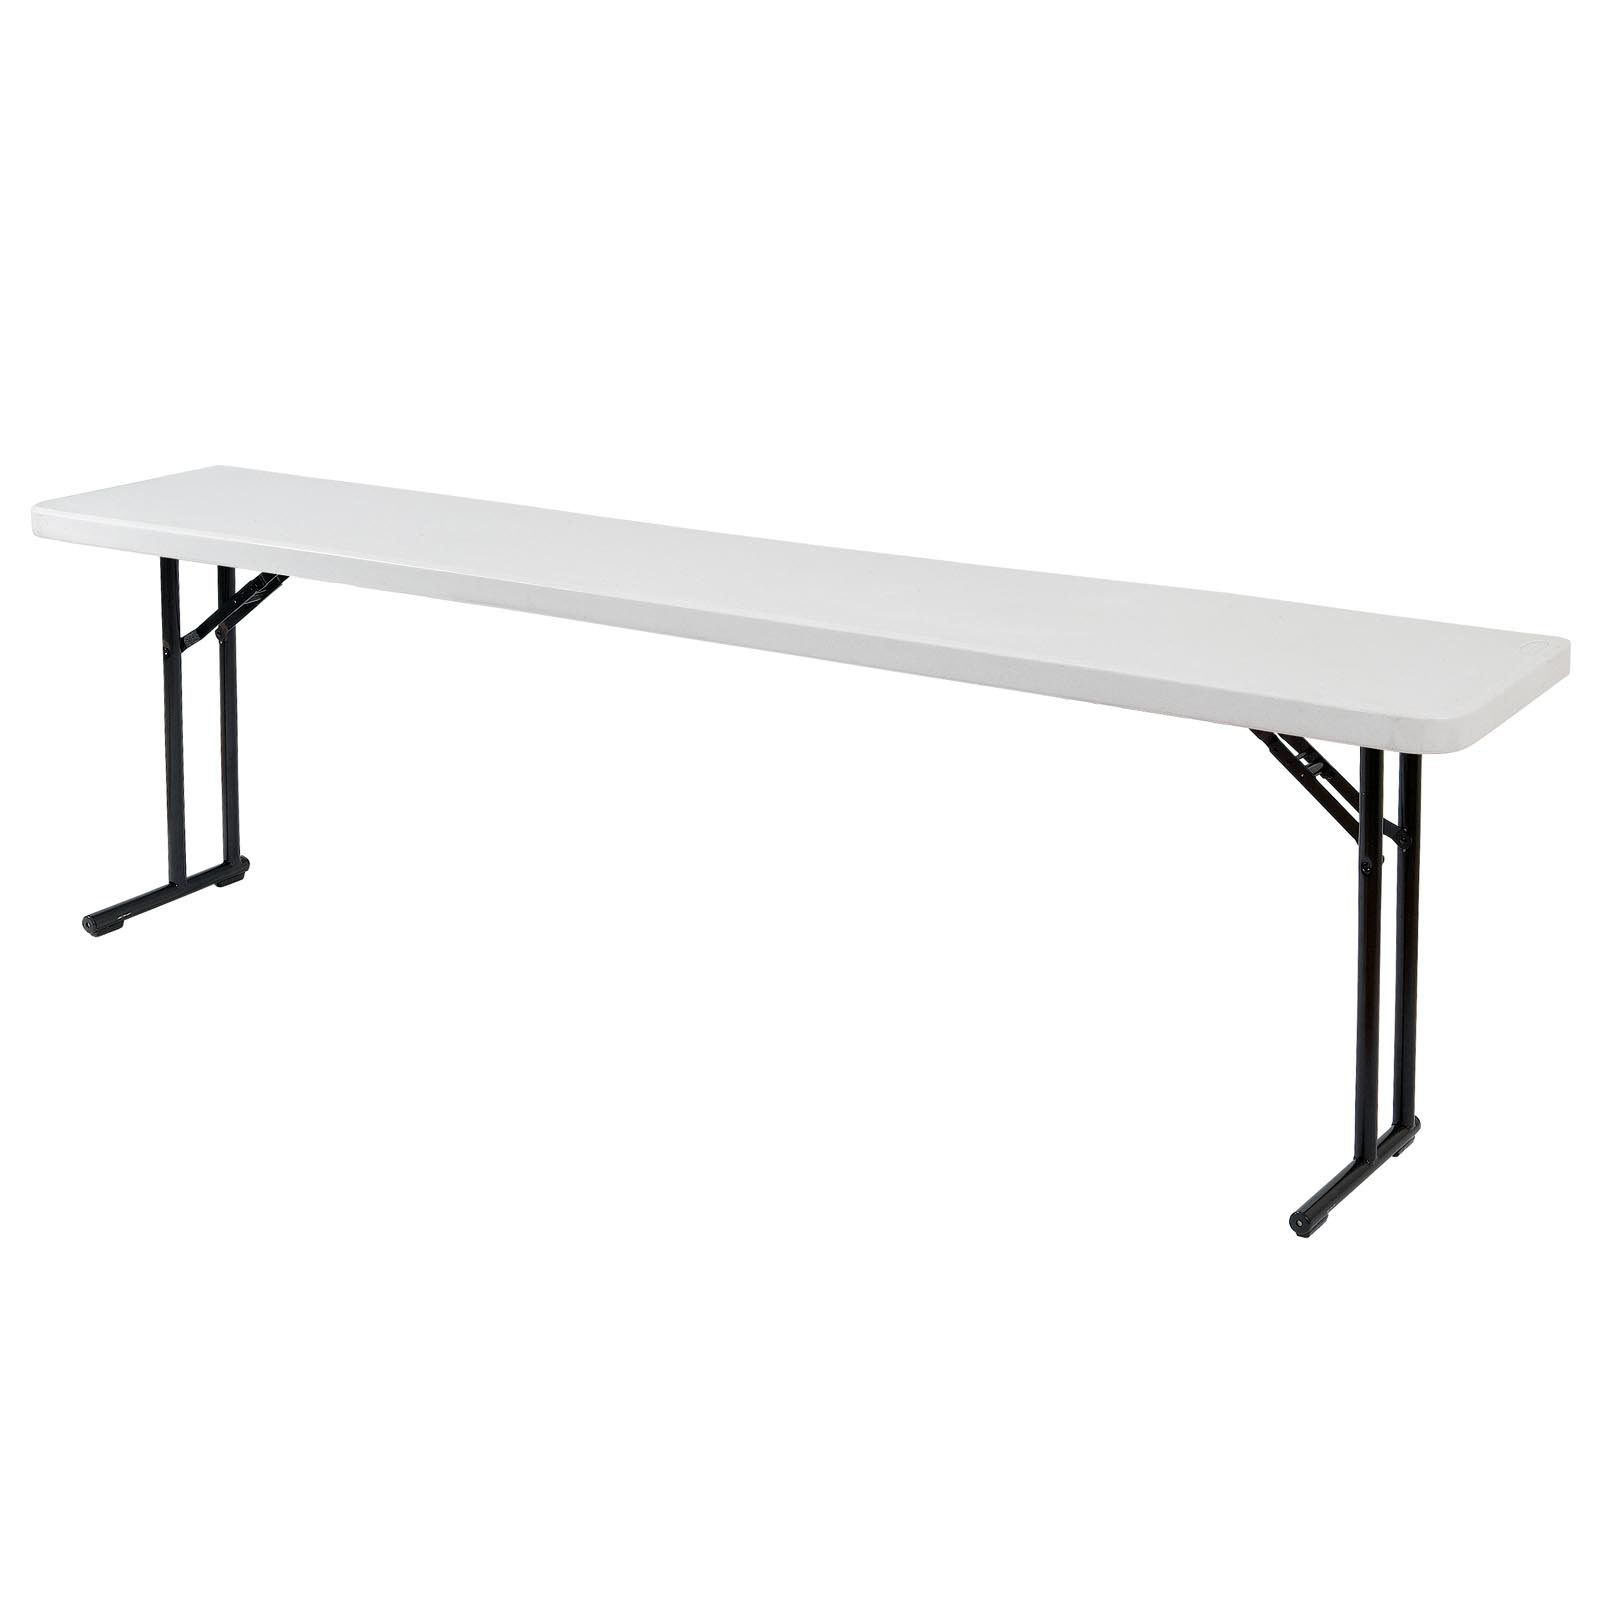 National Public Seating Lightweight 72 in. Rectangle Folding Seminar Table - White